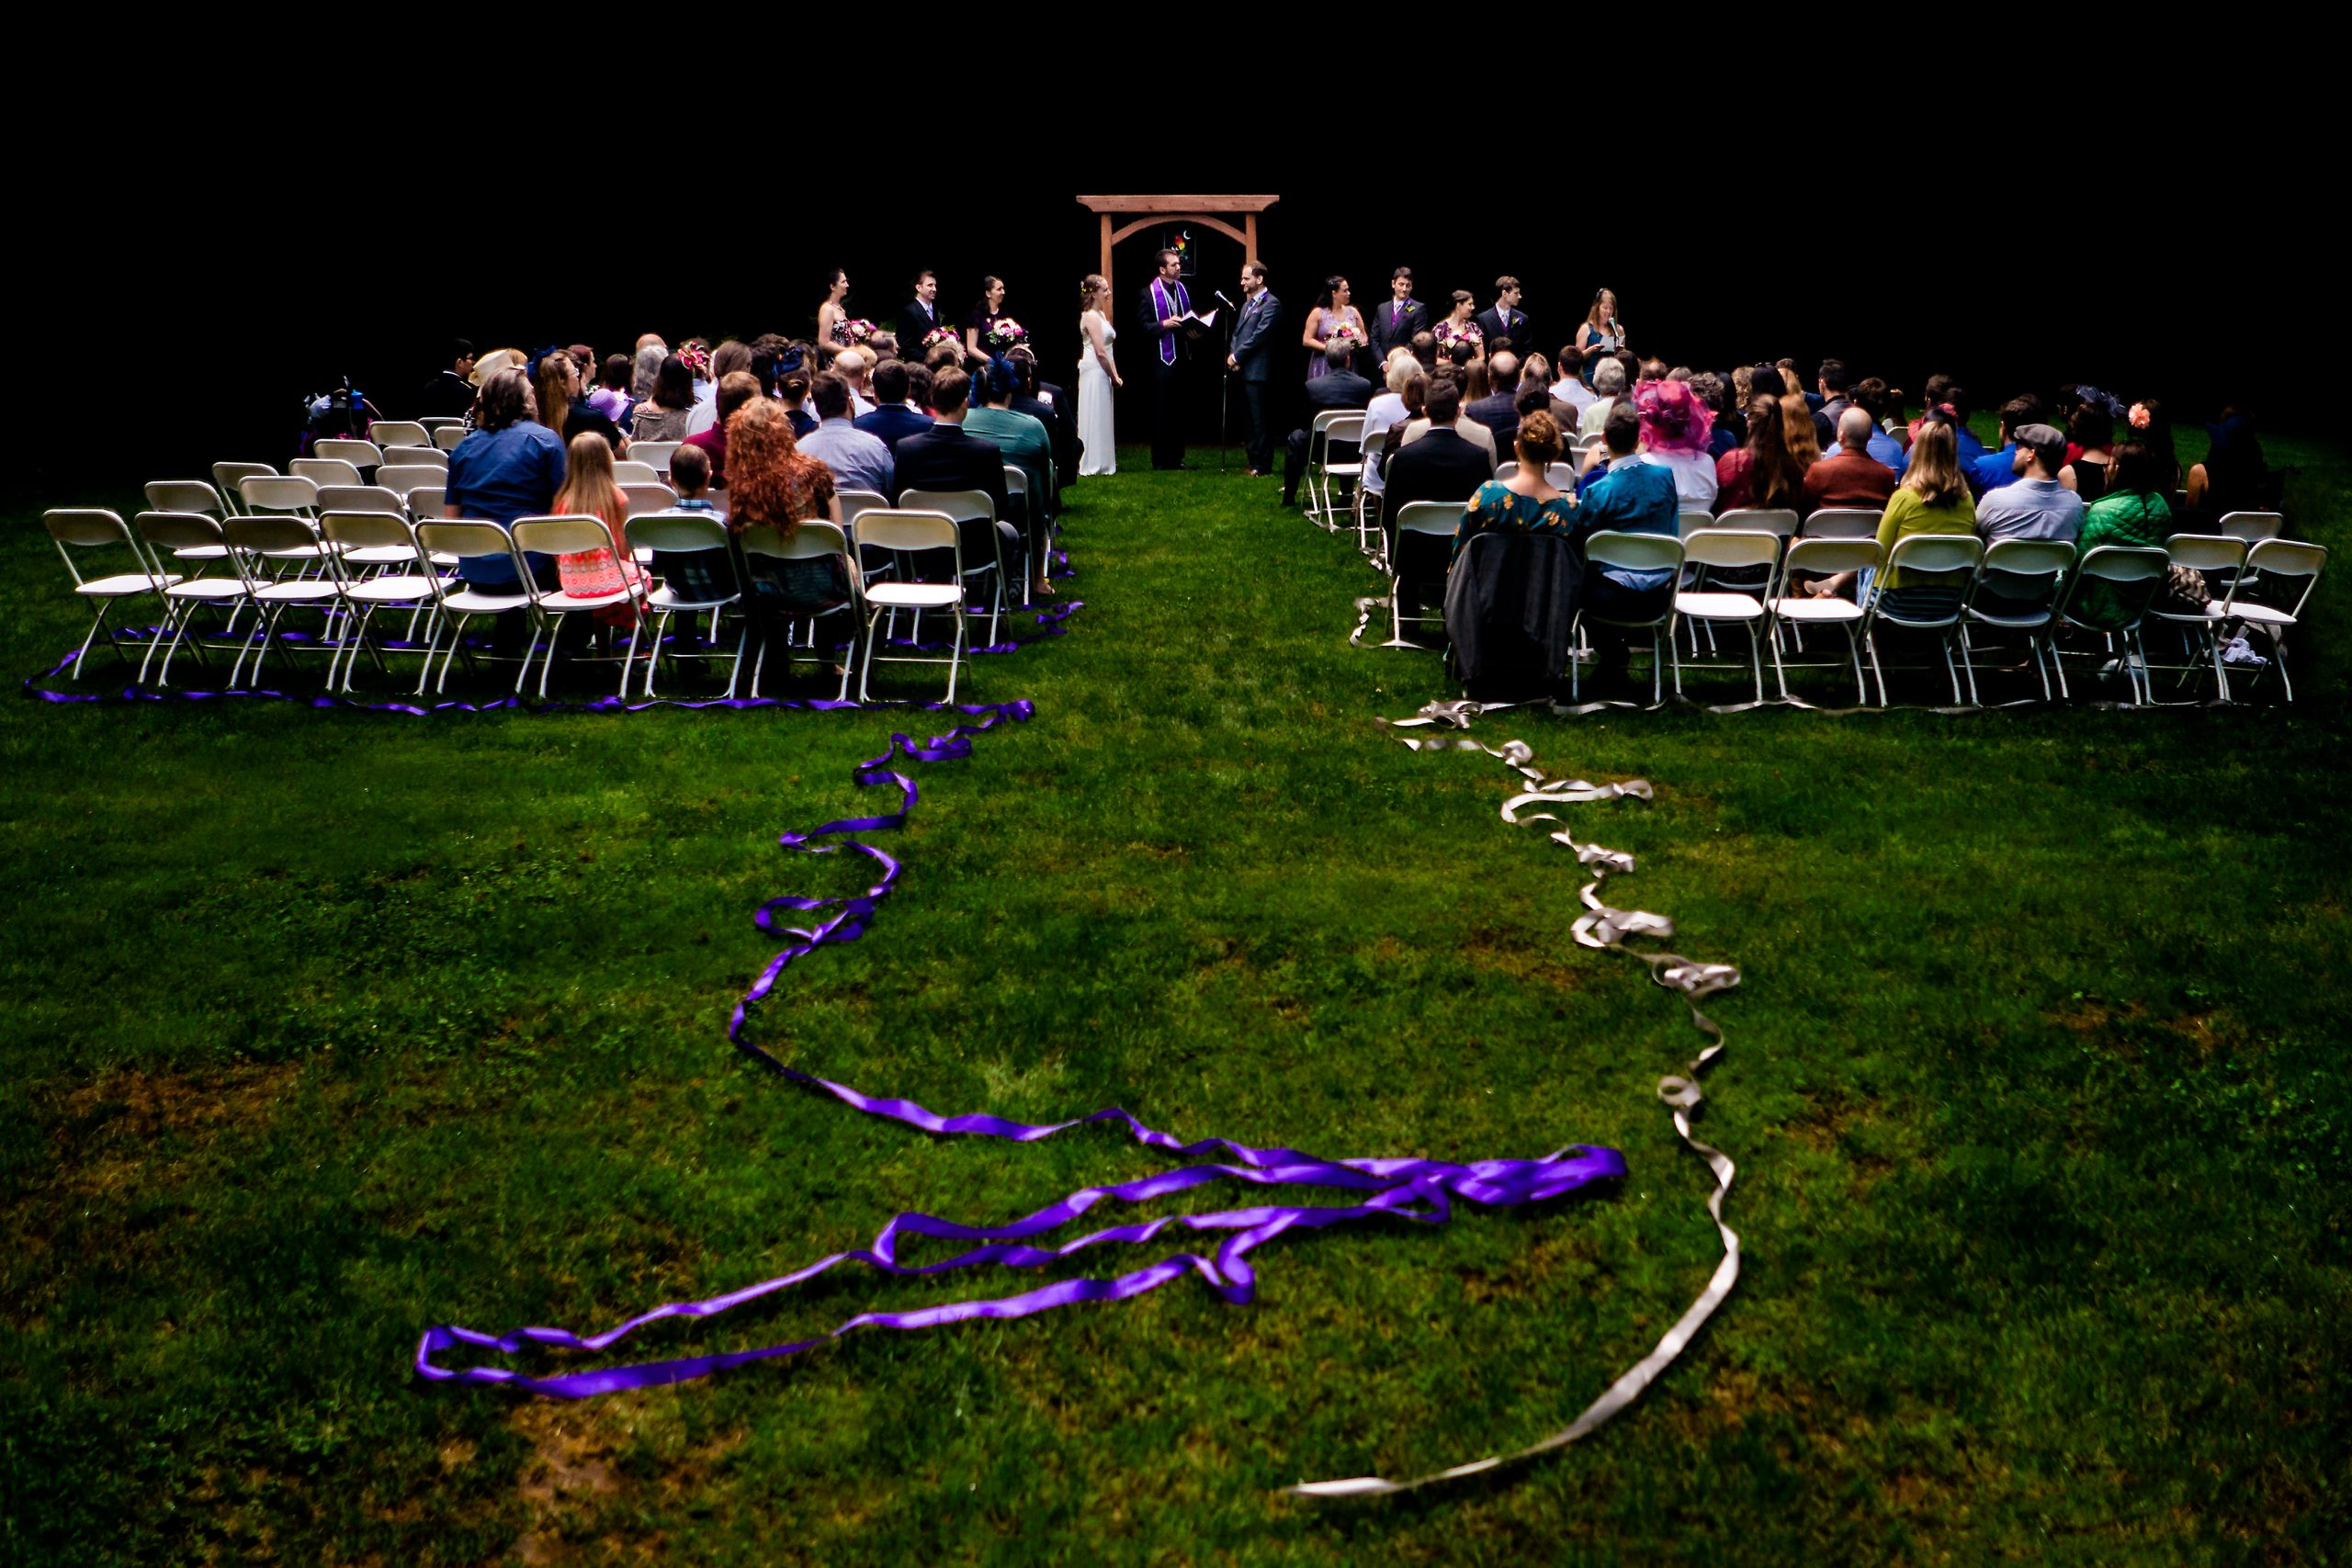 Wedding ceremony in progress on a green lawn